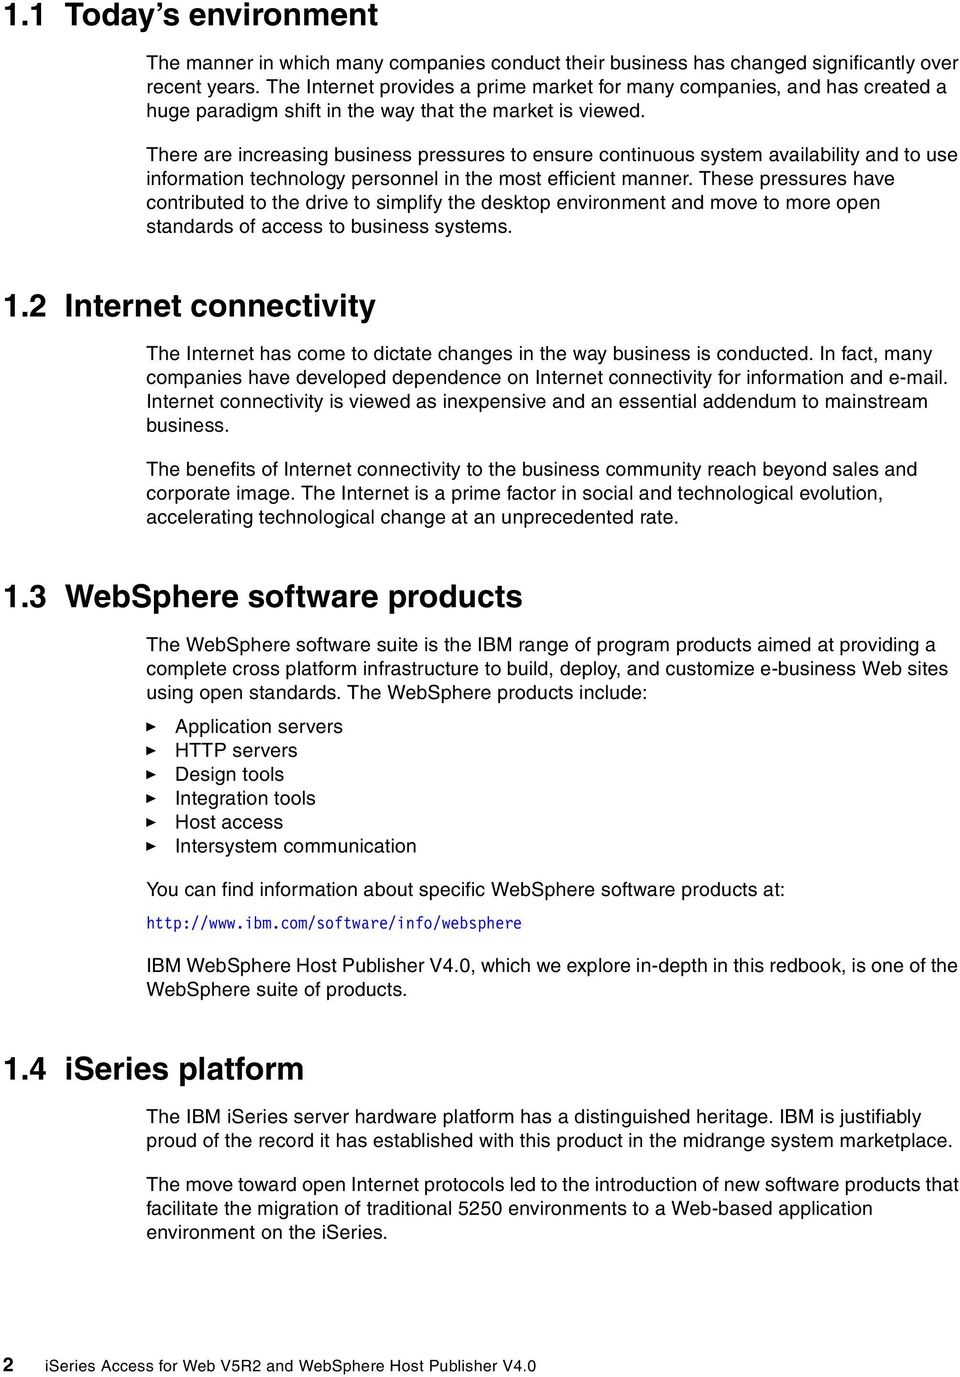 iseries Access for Web V5R2 and WebSphere Host Publisher V4 0 - PDF